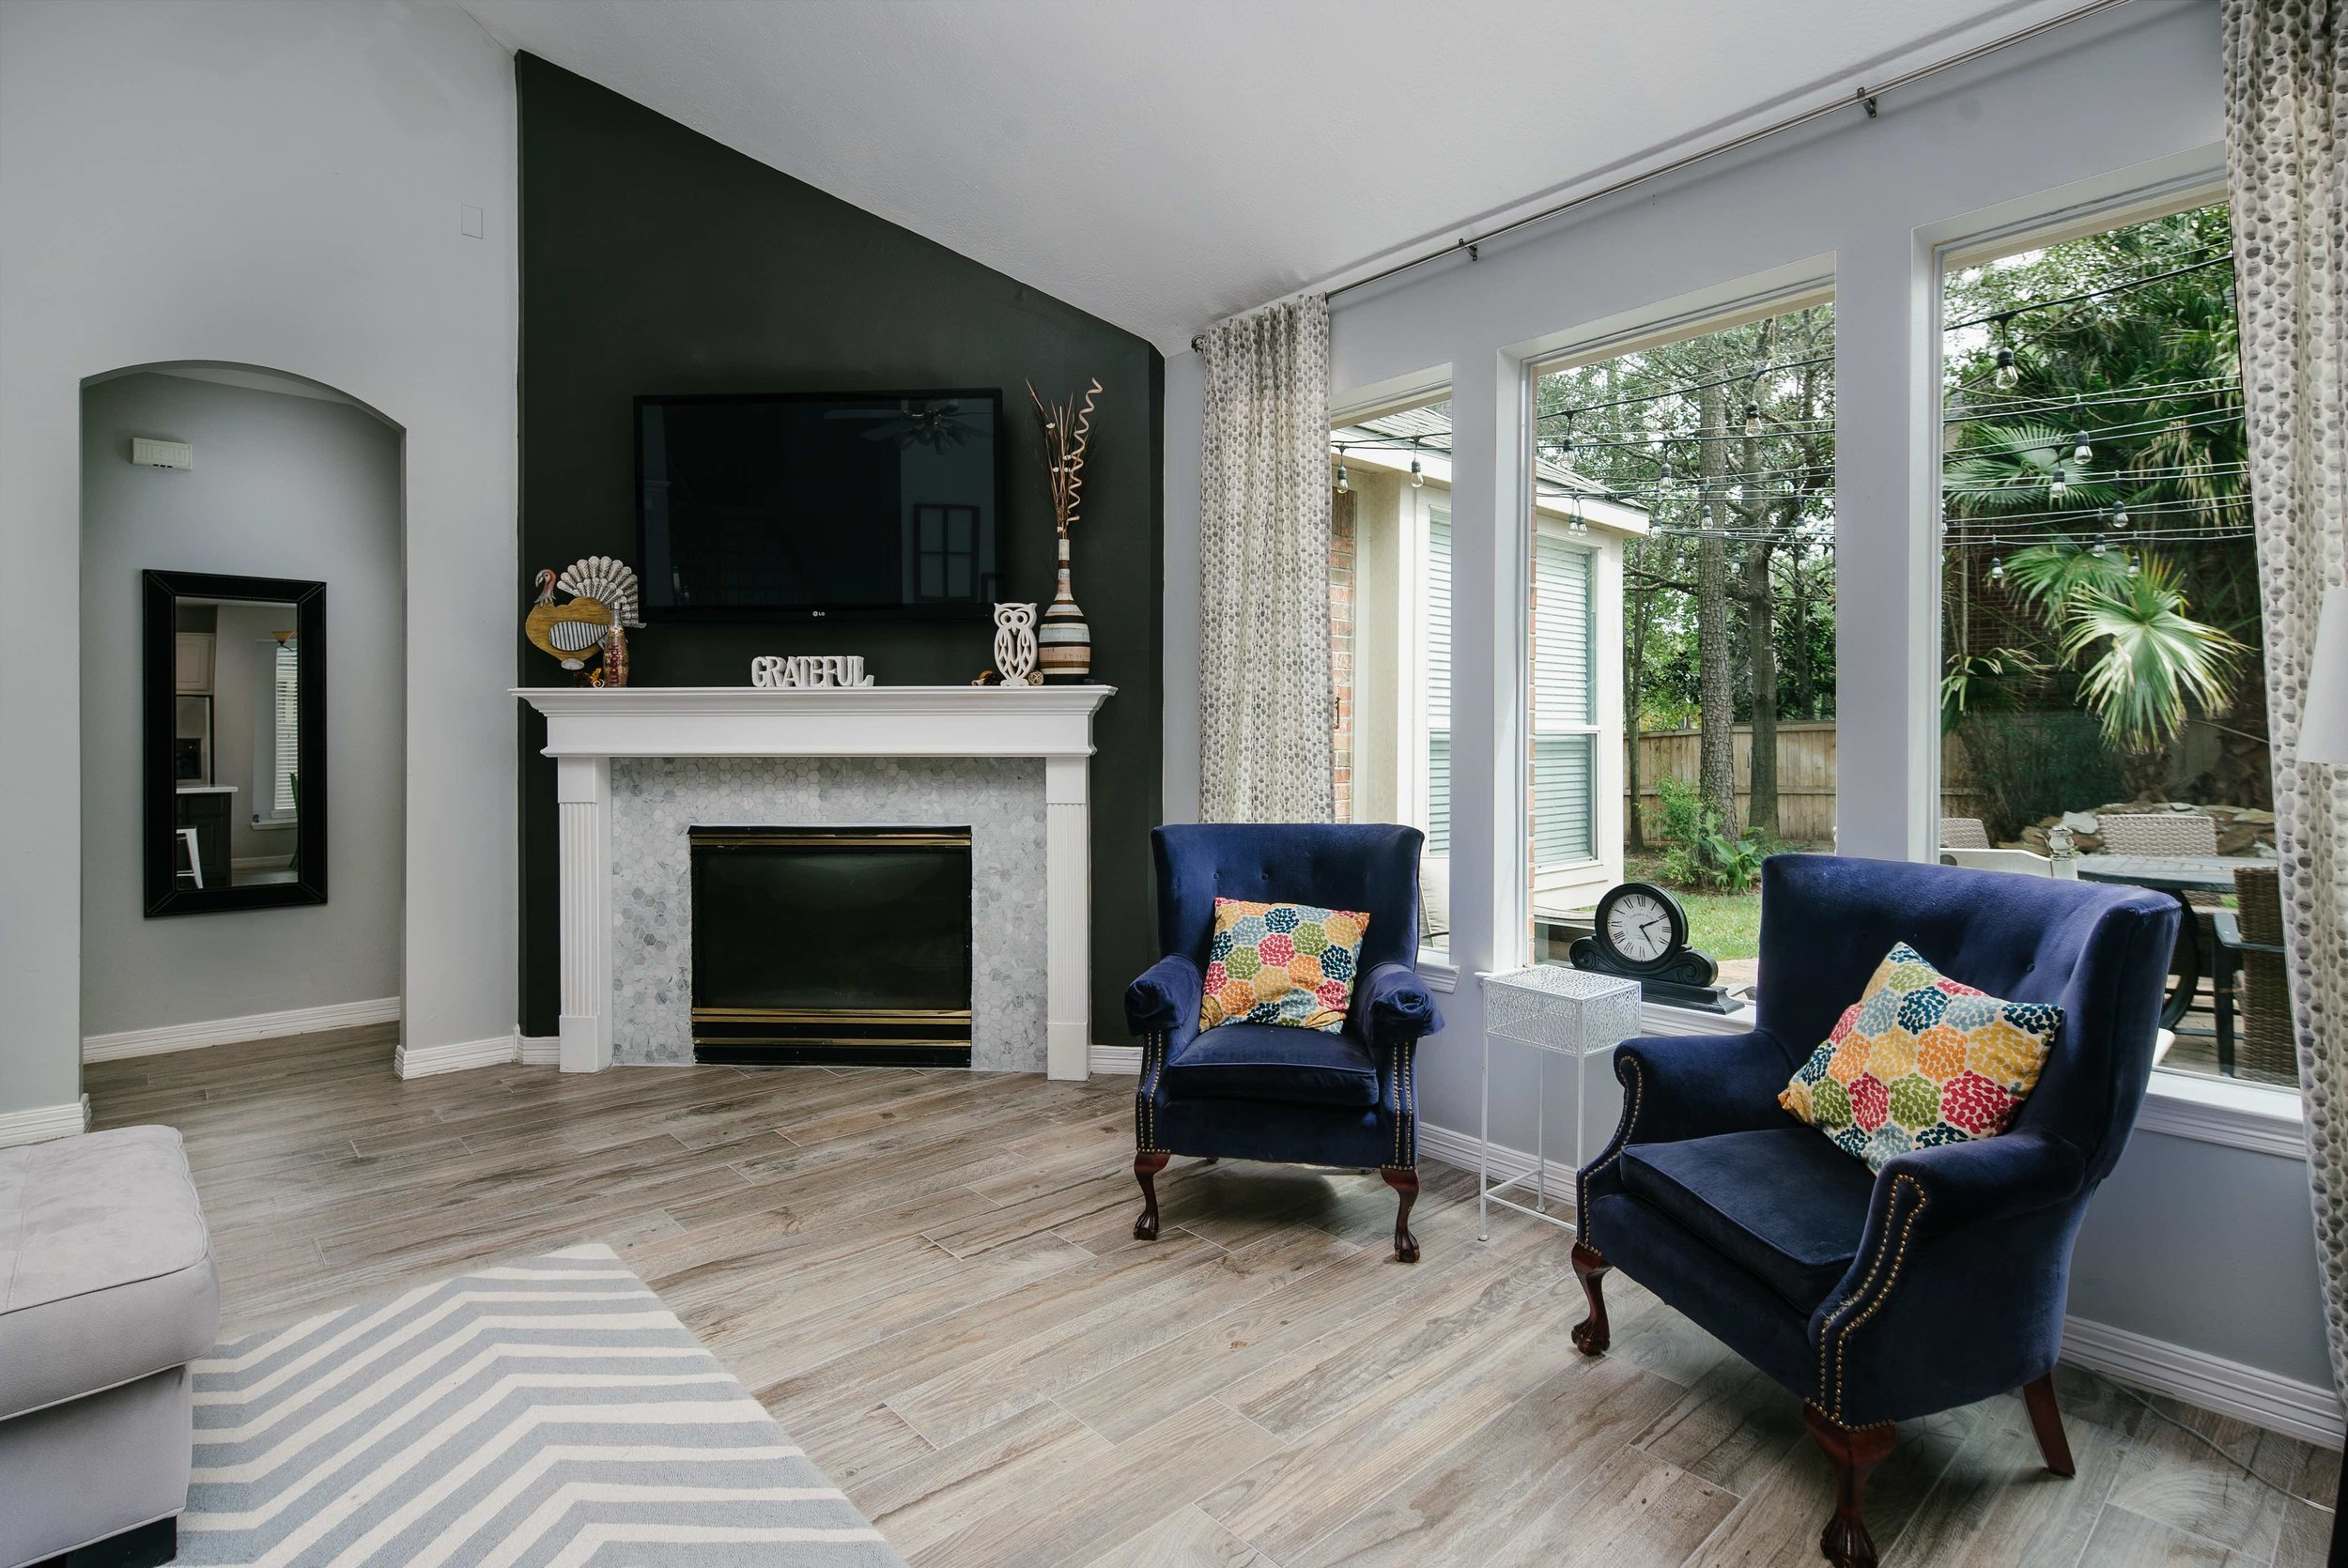 This living room is brought to life with these large elegant windows, the woodfloor tile, and the beautifully tiled fireplace.